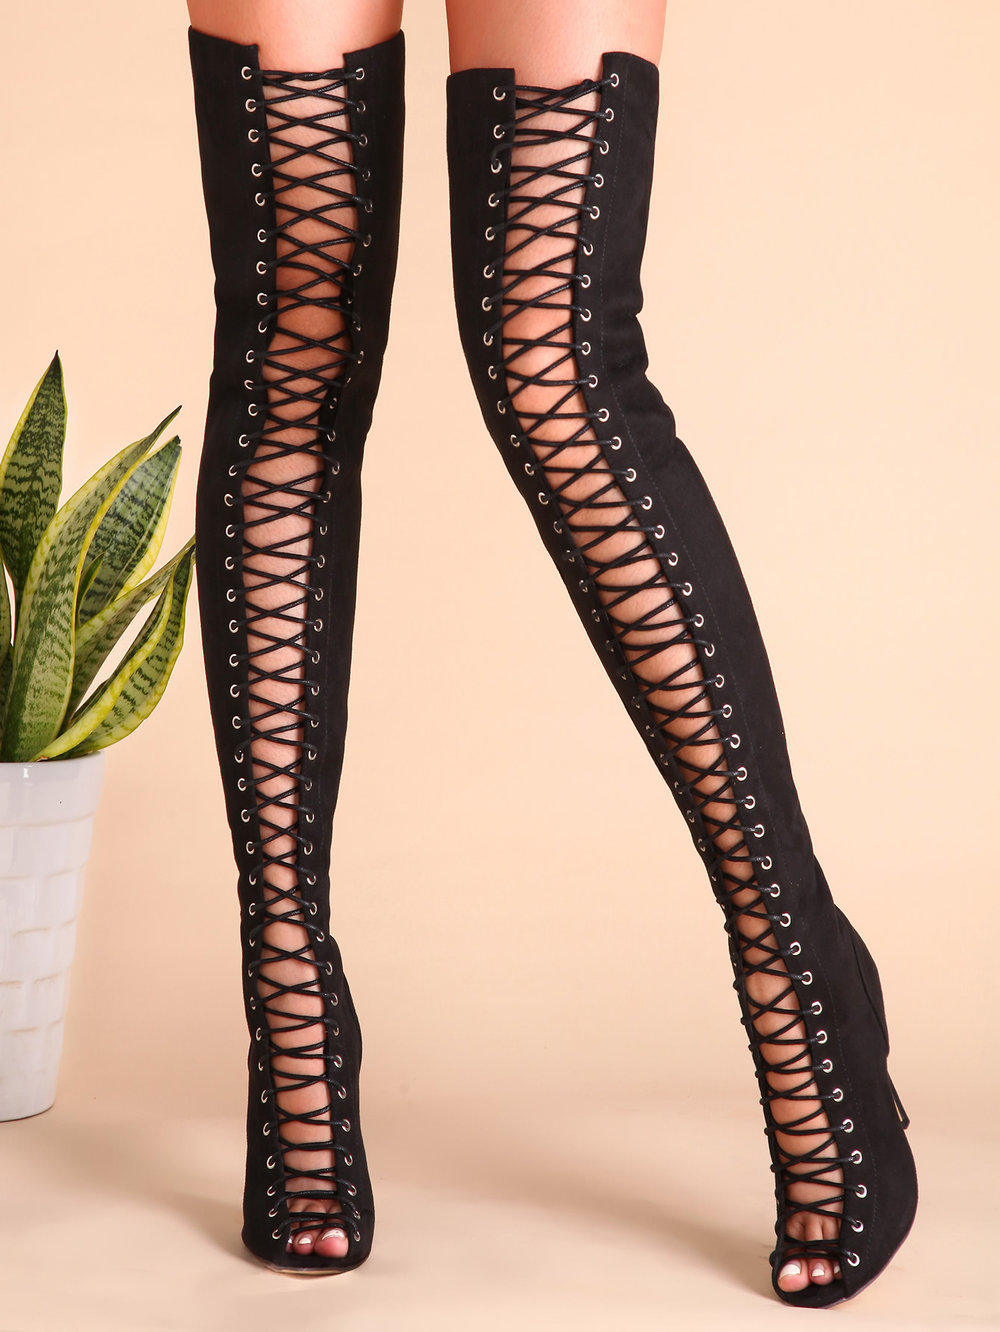 These ones are less than $60 and the website delivers worldwide! Super hot!